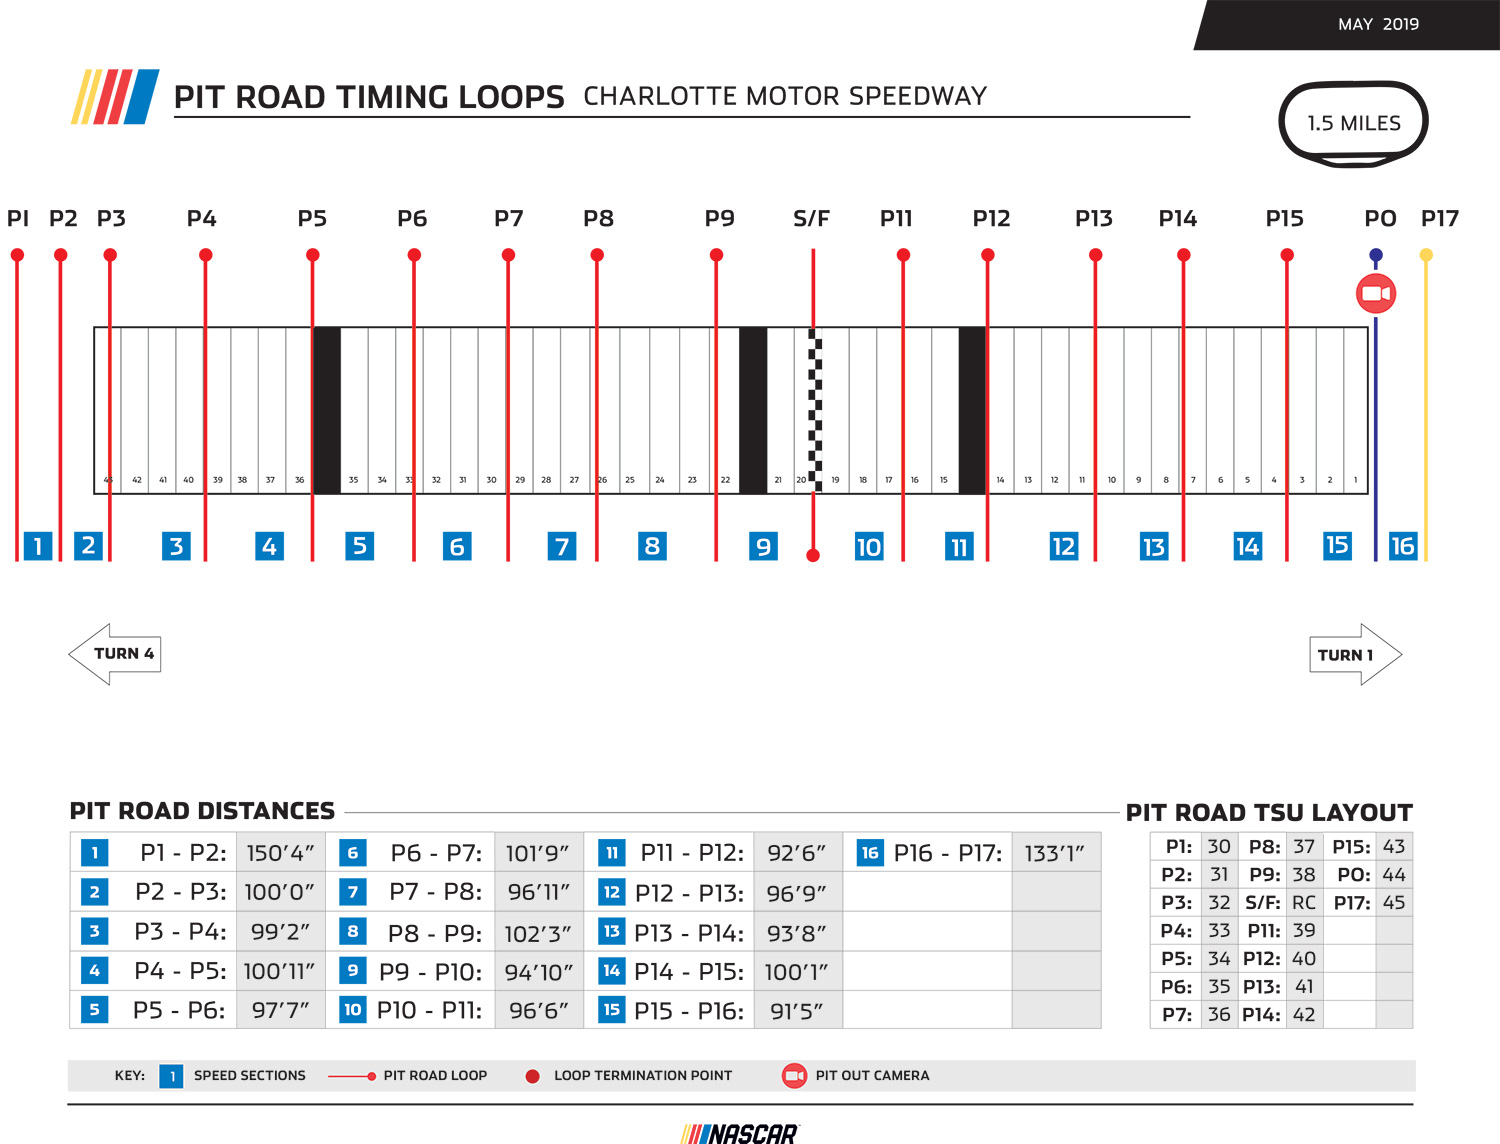 Charlotte Pit Road Timing